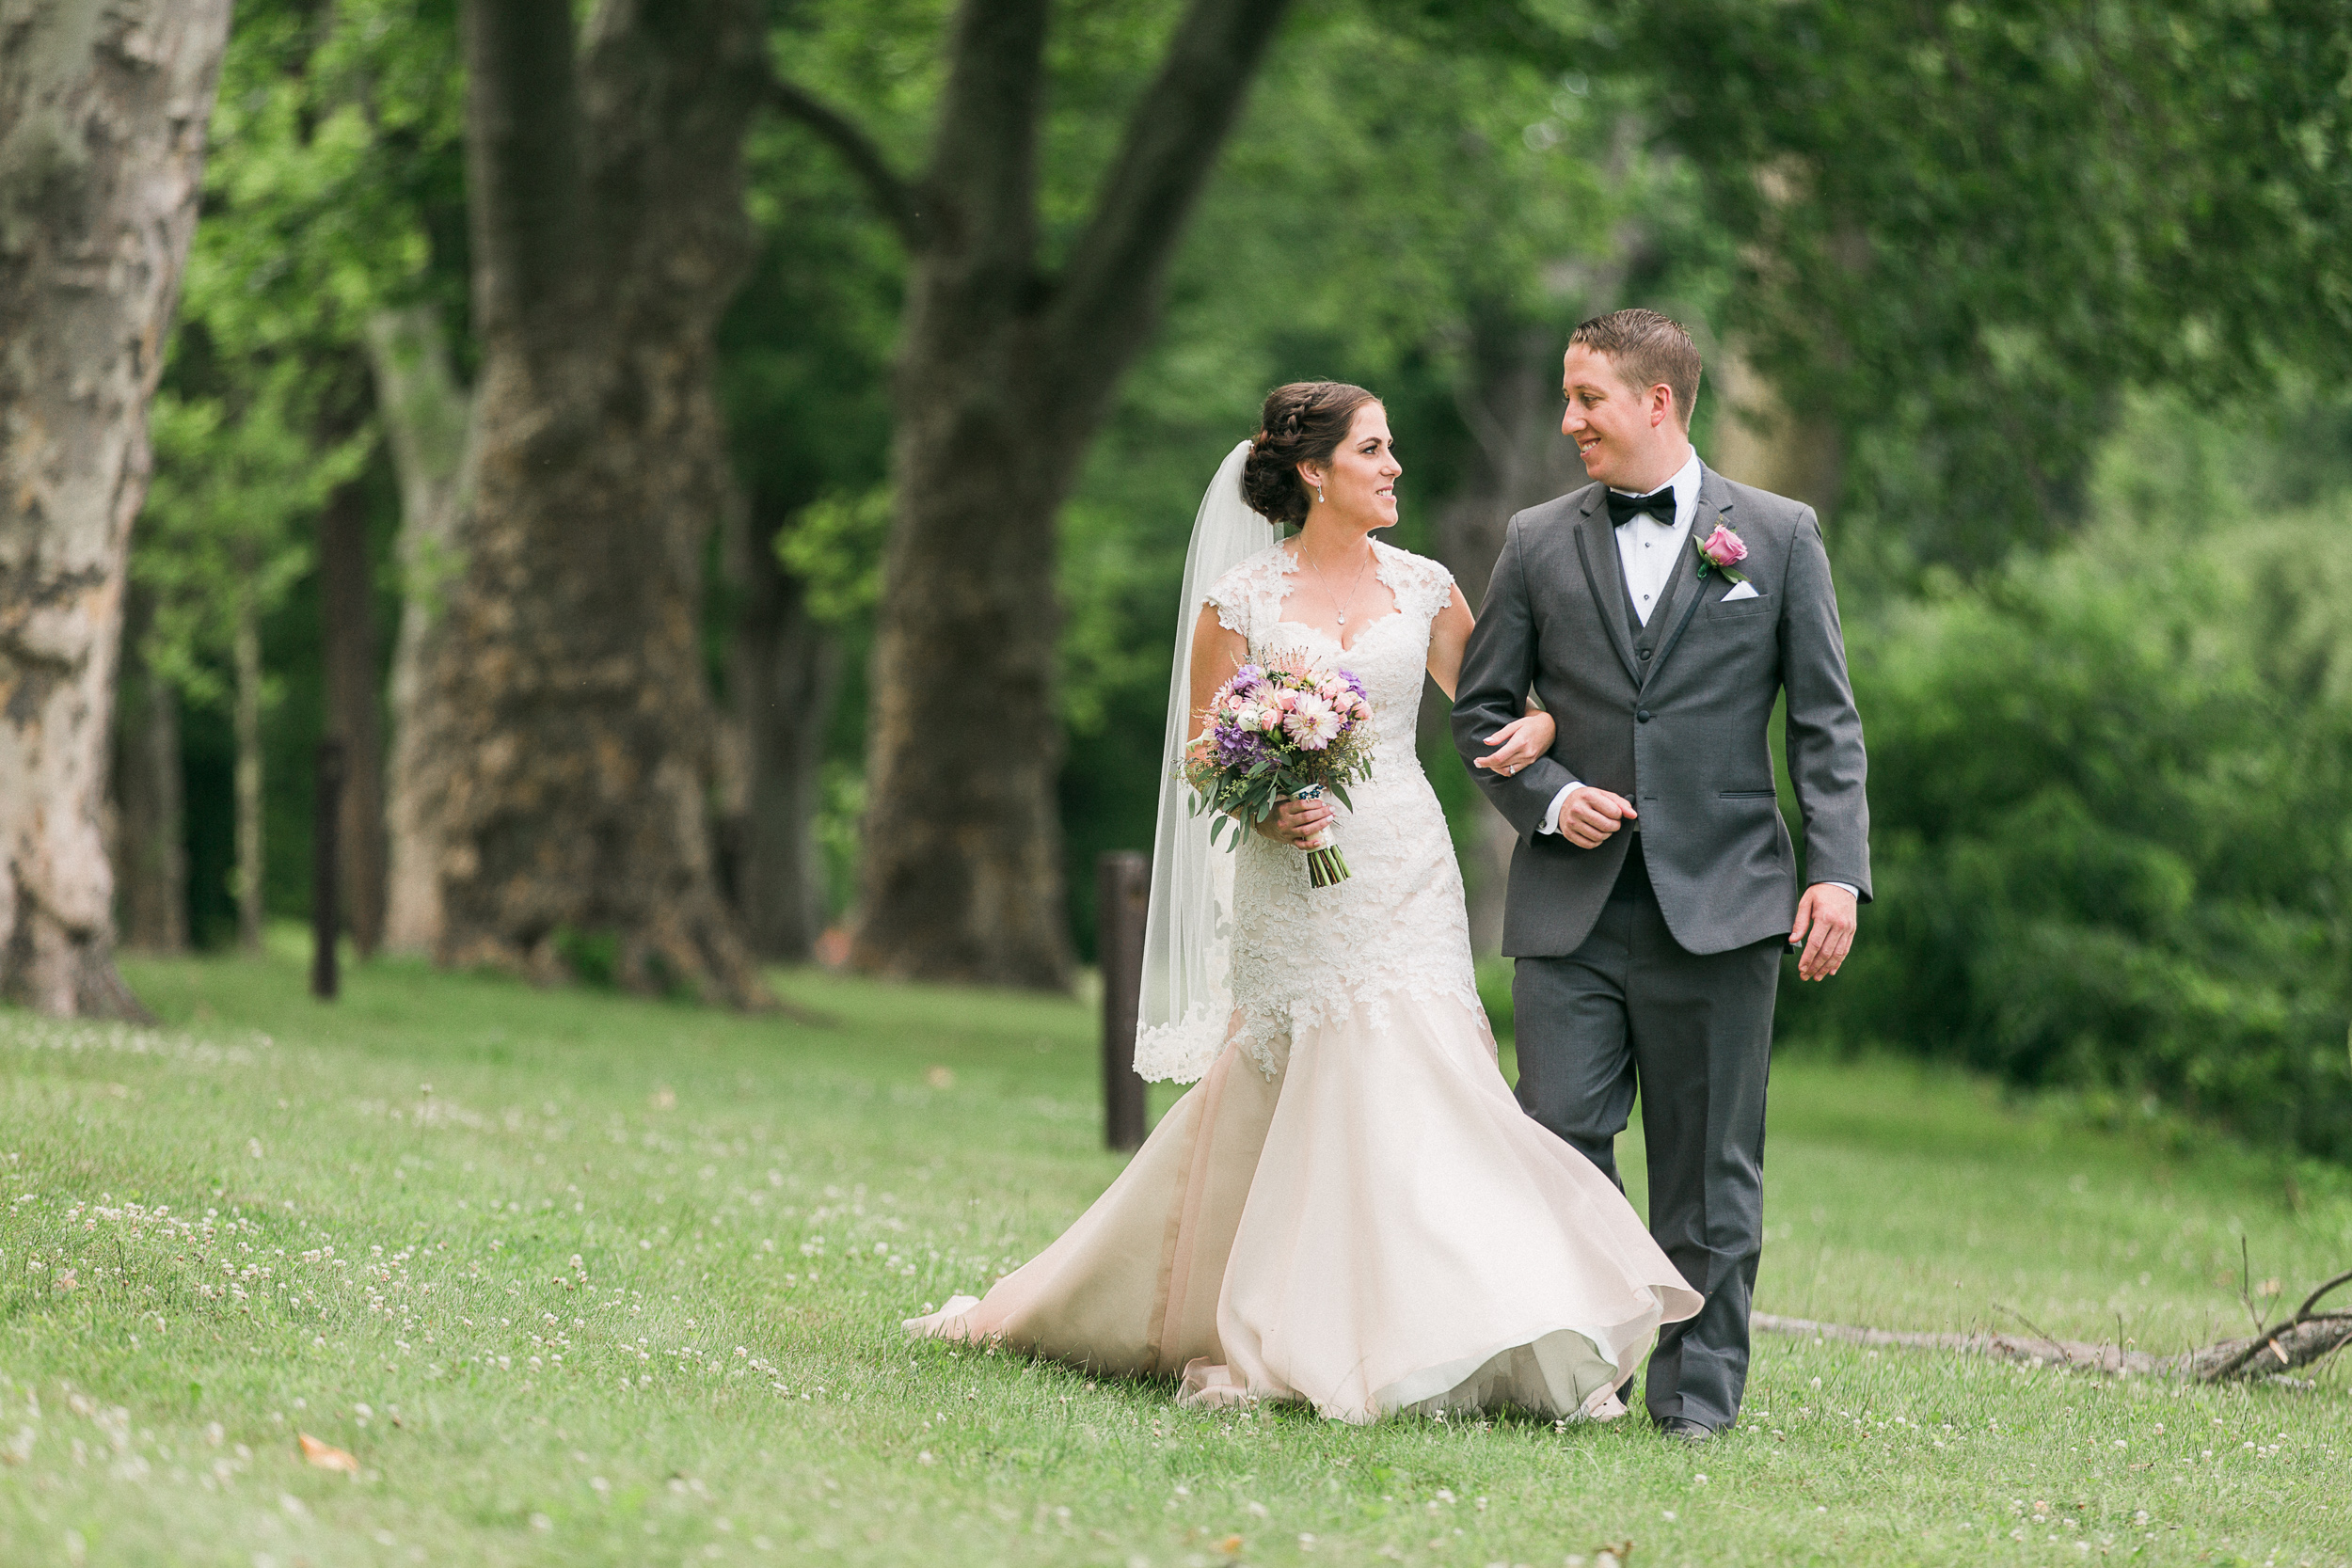 Washington Crossing PA Wedding WRHPhotography-24.jpg